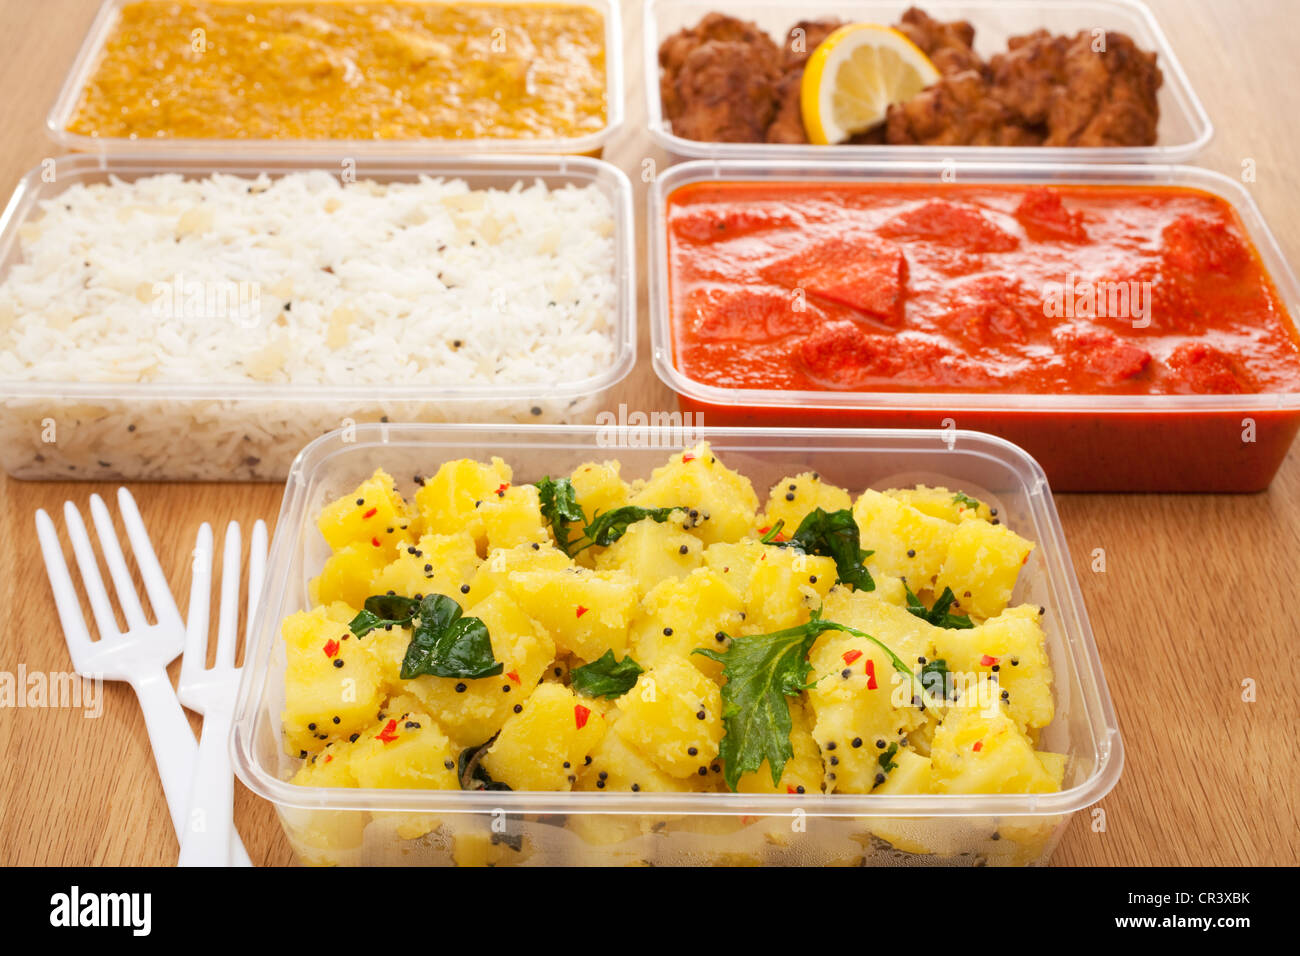 A selection of Indian takeaway food in plastic containers - Stock Image